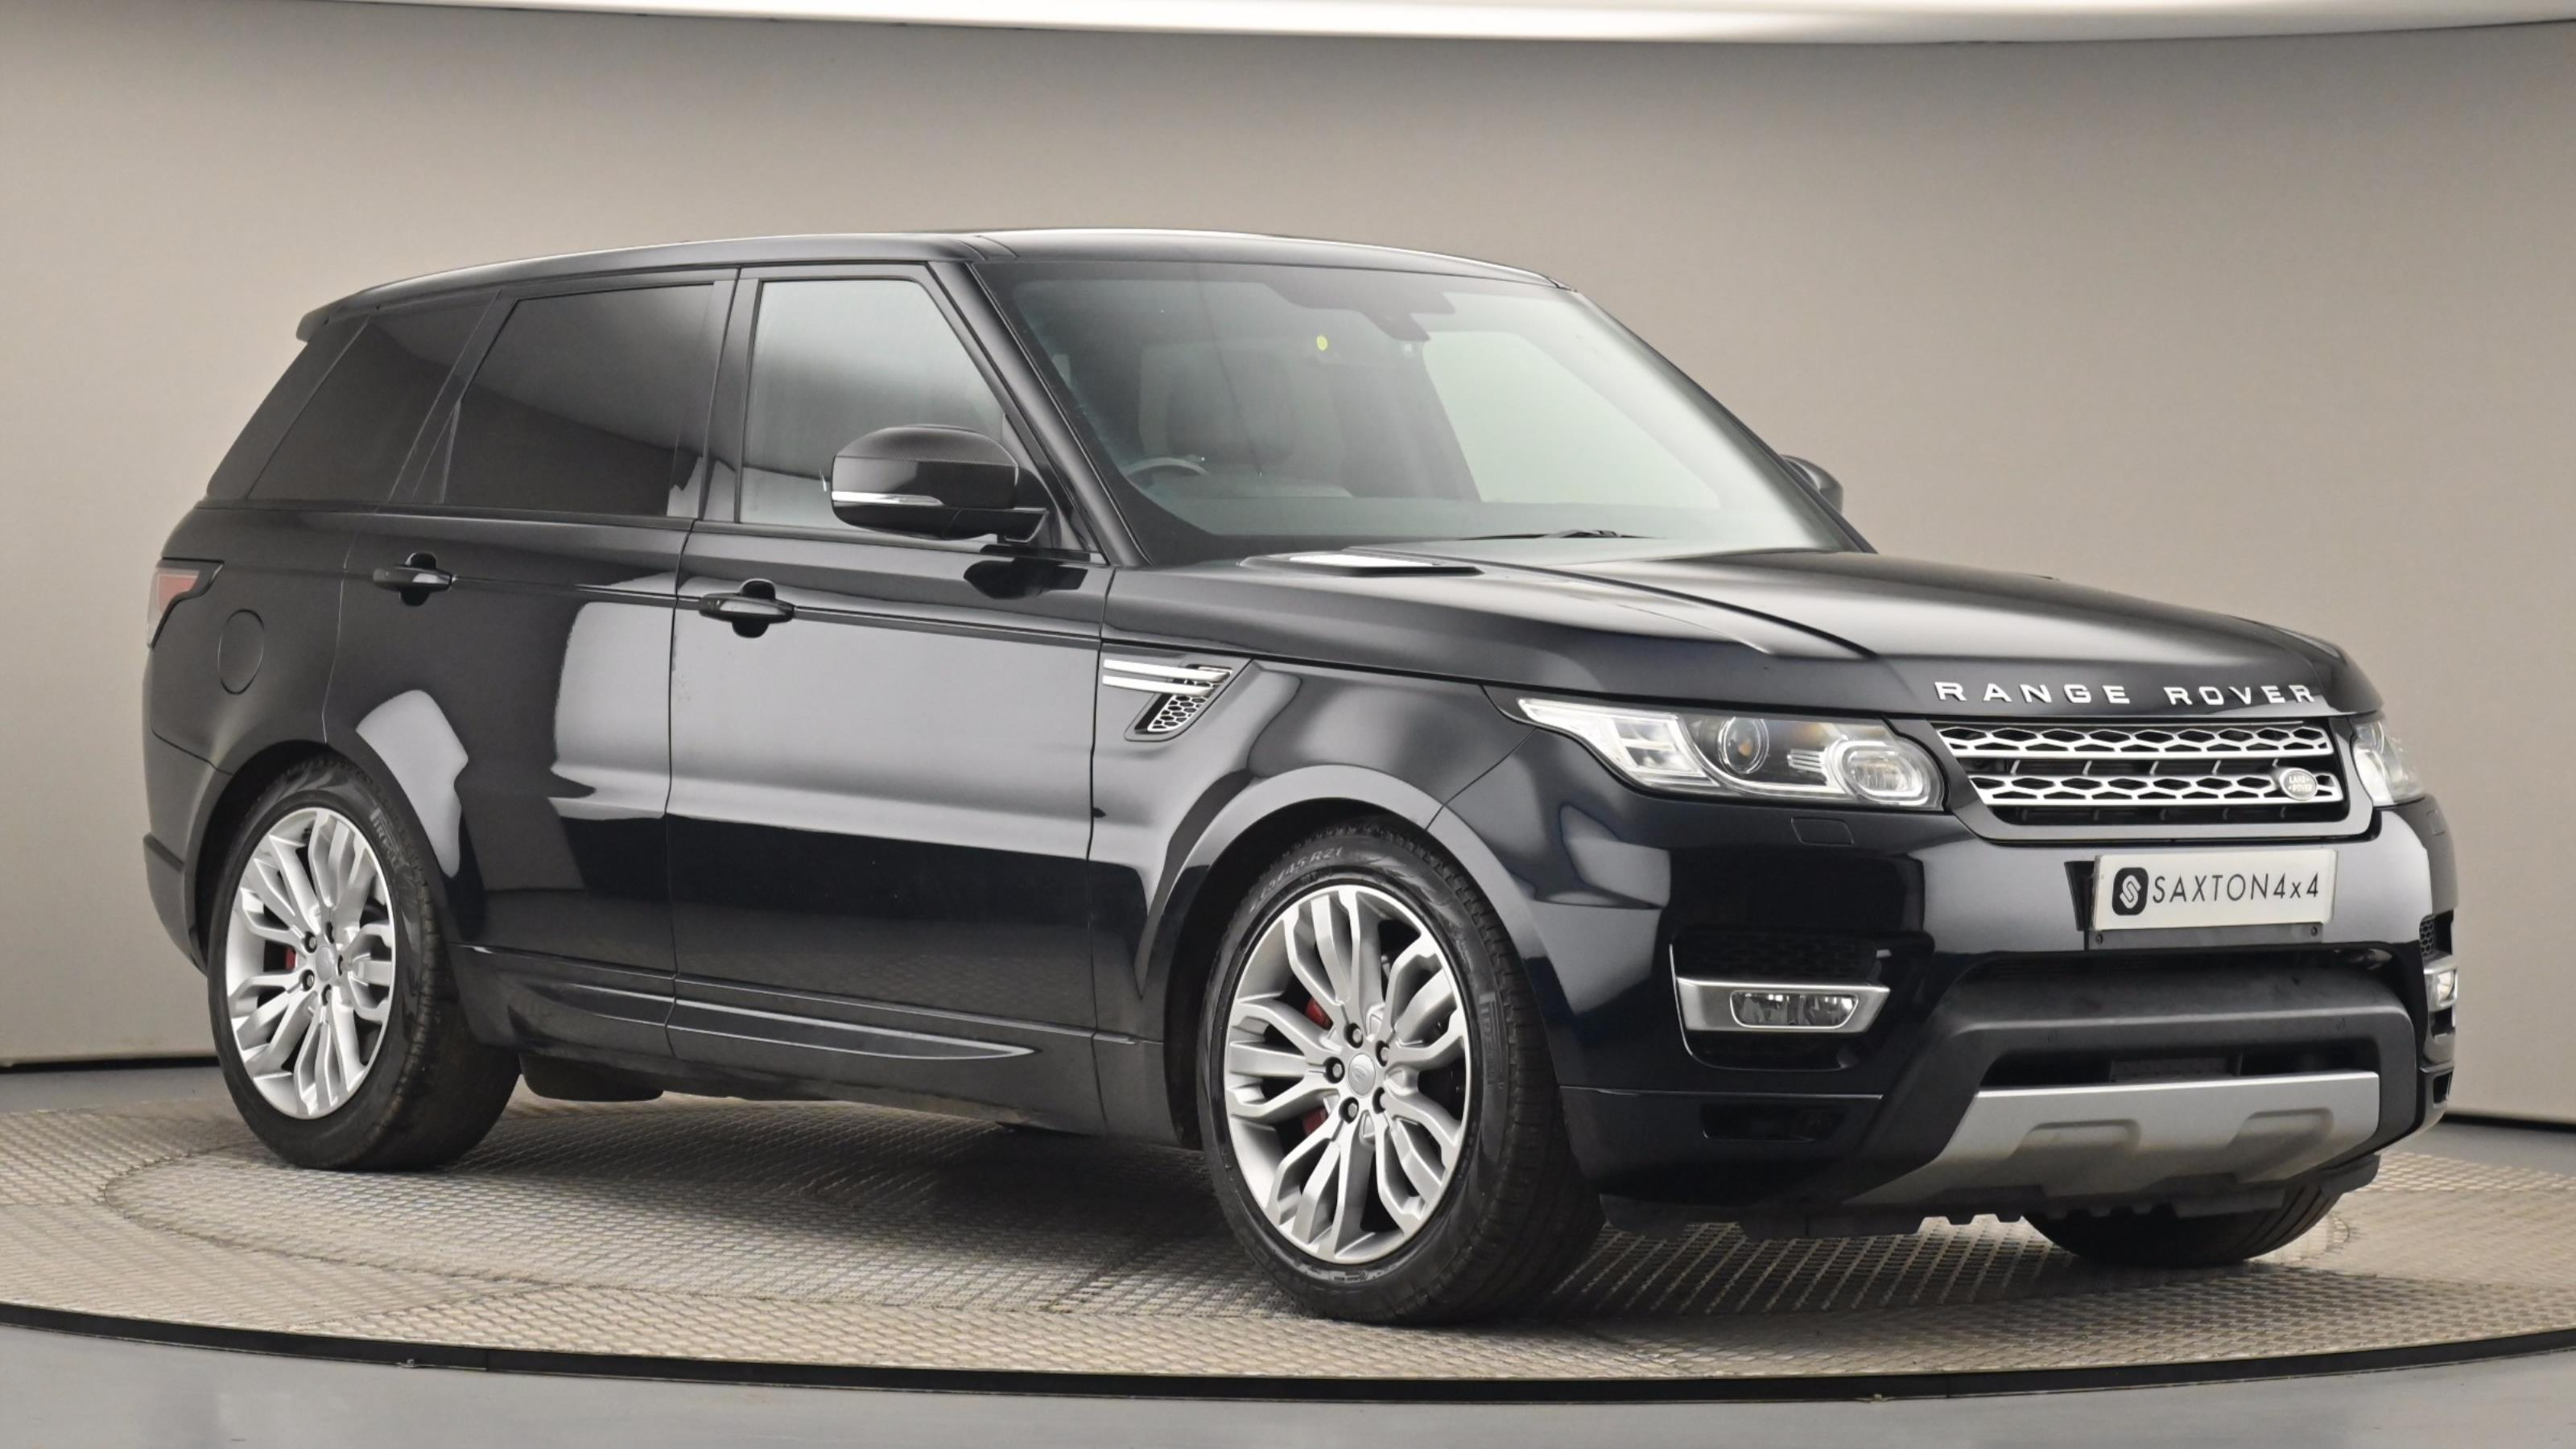 Used 2016 Land Rover RANGE ROVER SPORT 3.0 SDV6 [306] HSE 5dr Auto BLACK at Saxton4x4